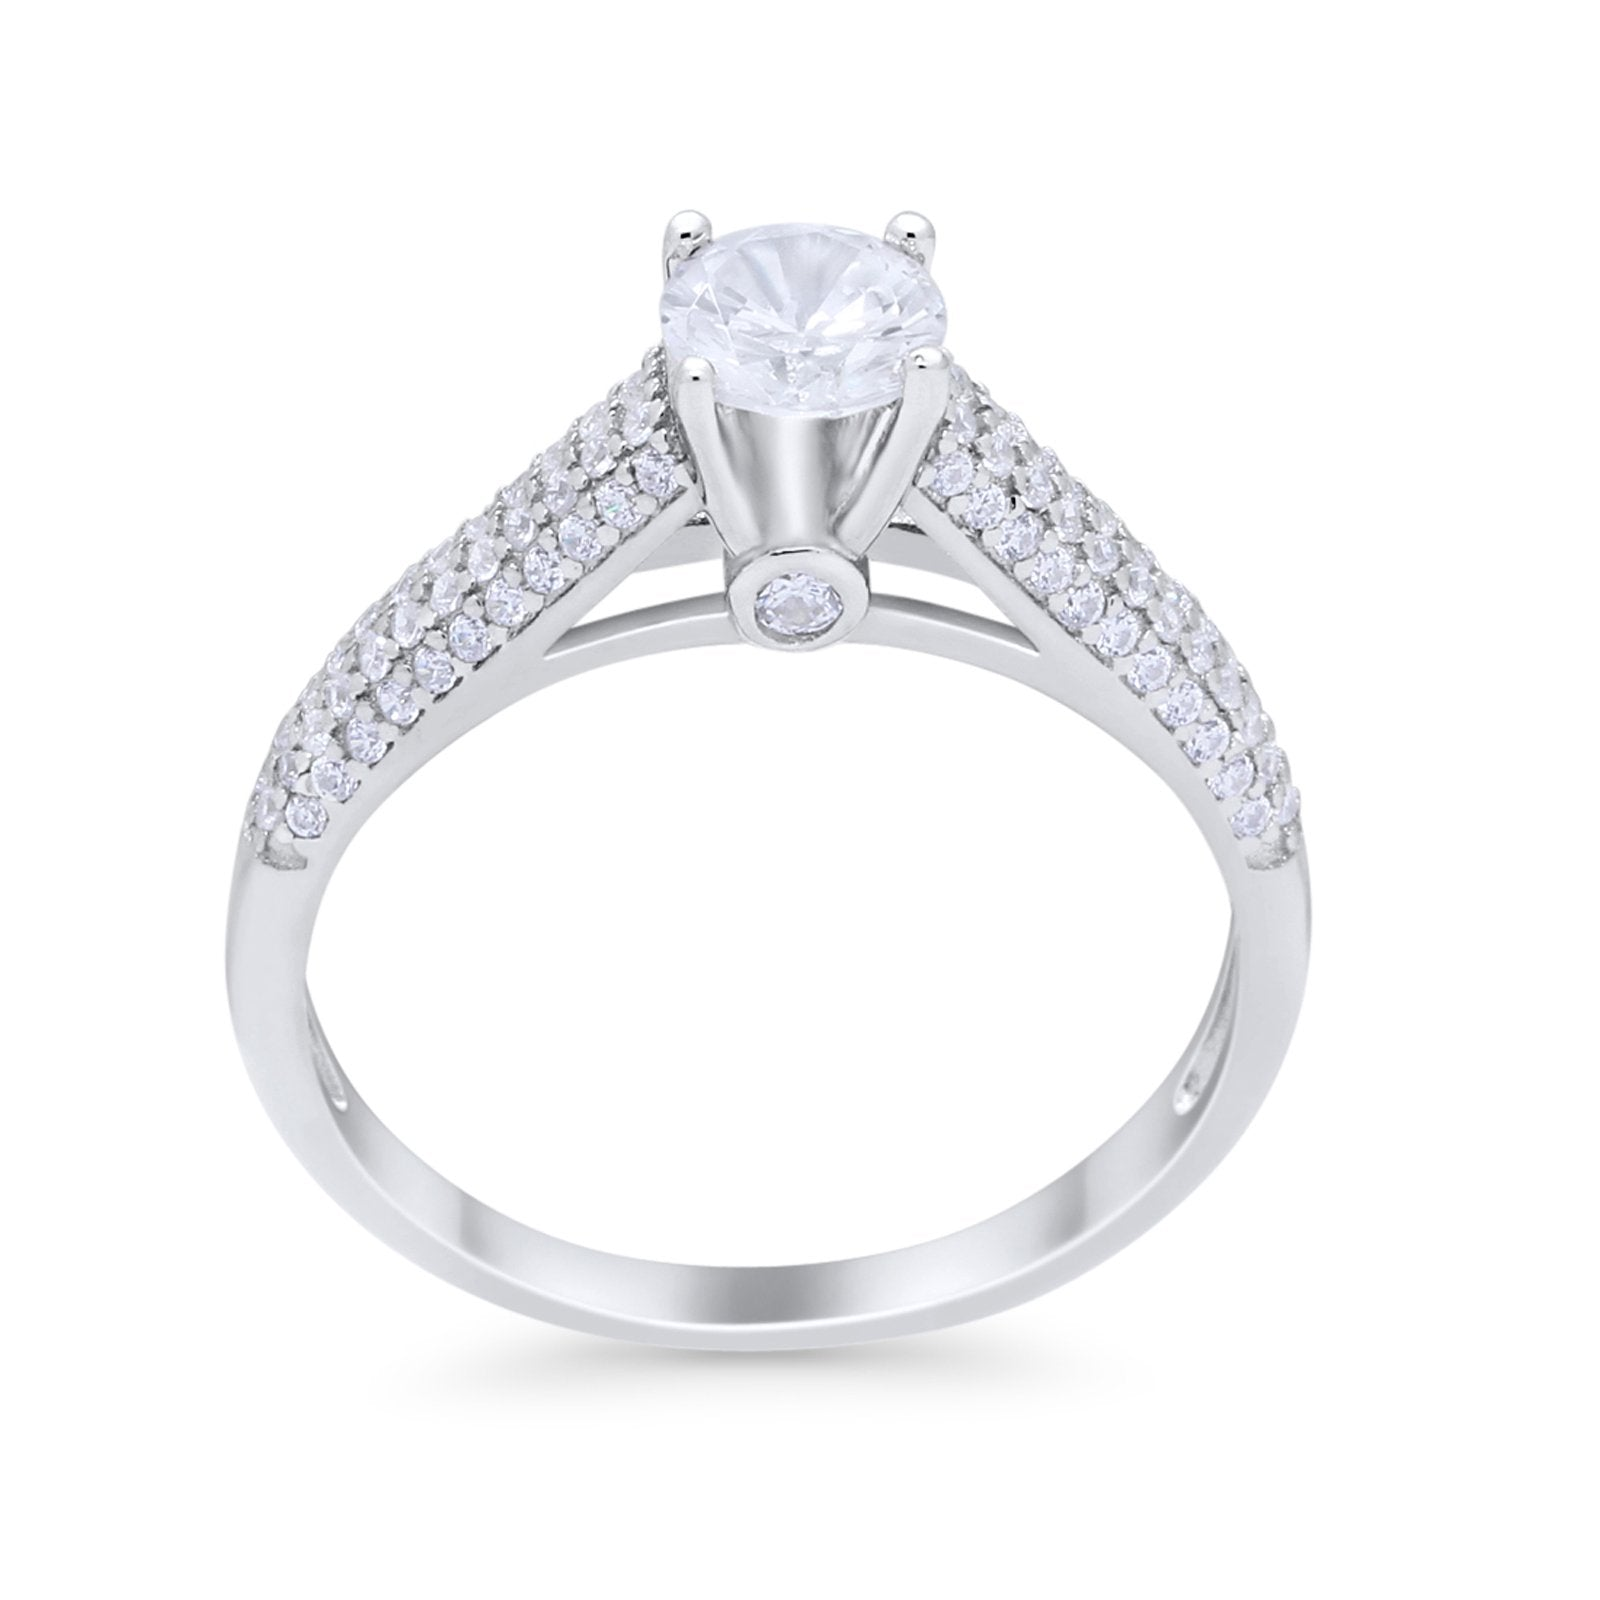 Vintage Style Art Deco Wedding Engagement Ring Round Cubic Zirconia 925 Sterling Silver